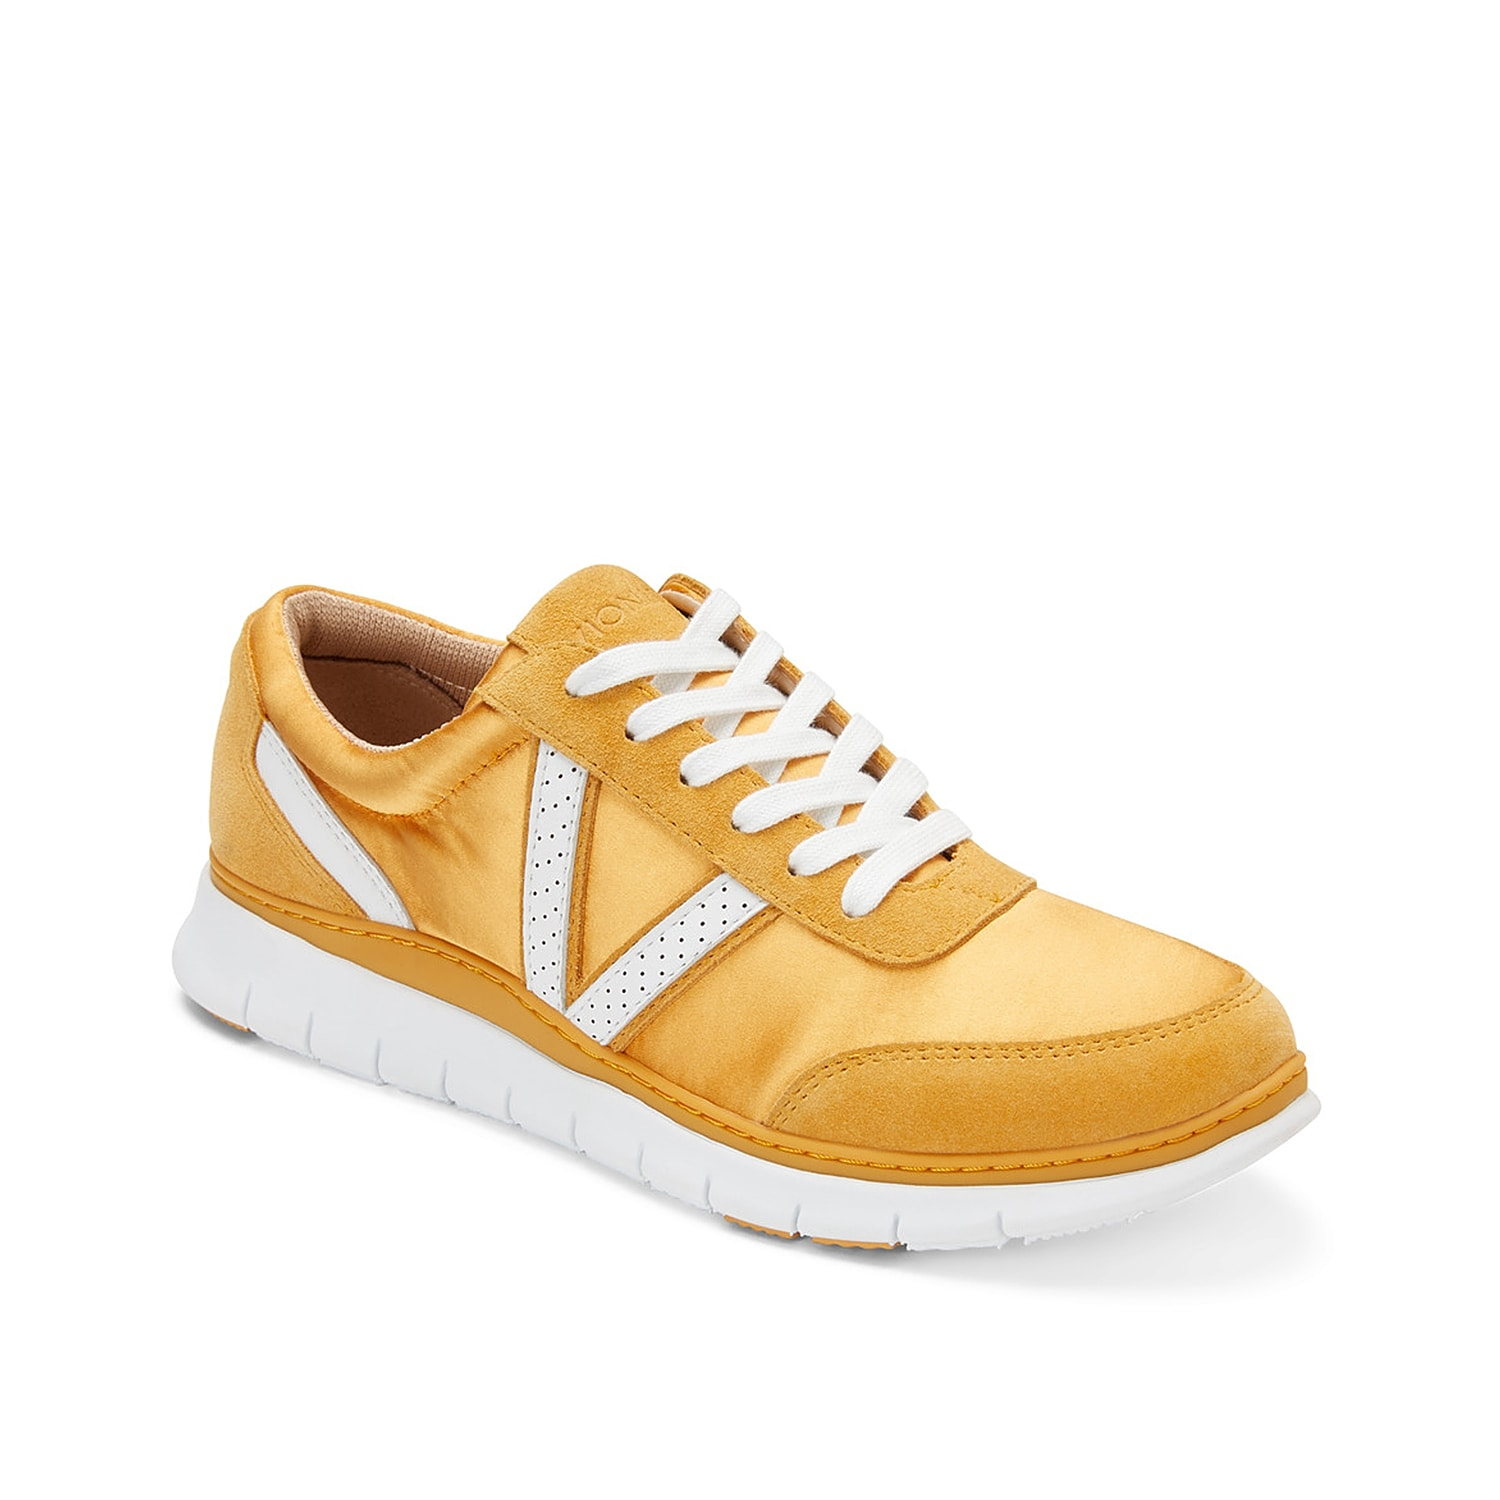 Revamp your sporty style with this Nana sneaker from Vionic. Soft yet sturdy, this low-top sneaker is approved by Apma and provides all cushioned comfort needed to ease your soles.